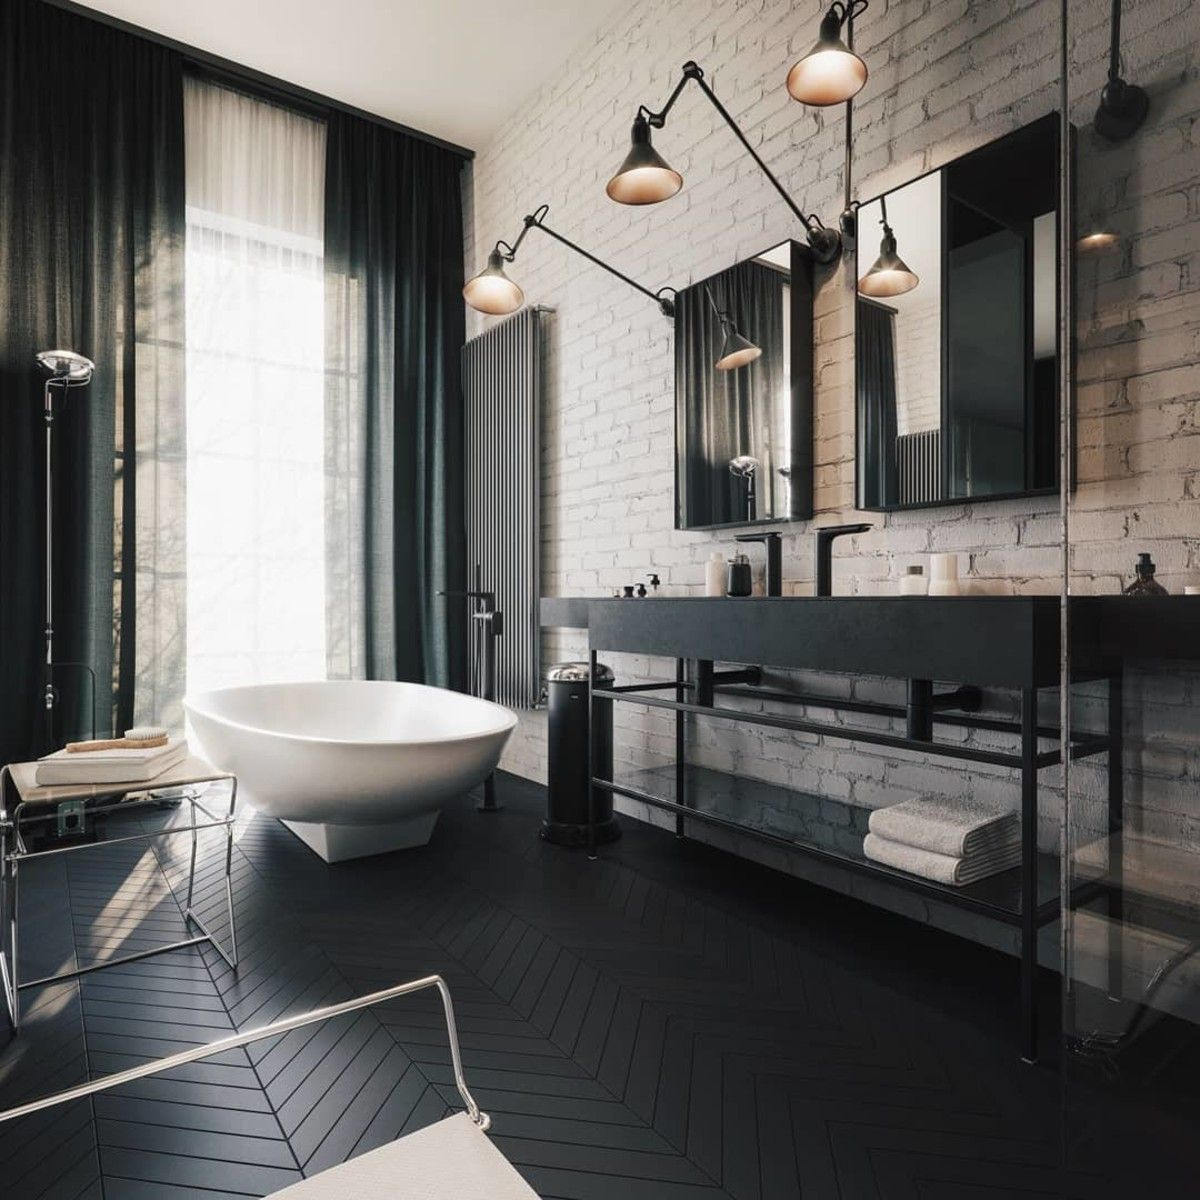 Minimal Interior Design Inspiration  6  Bathroom interior